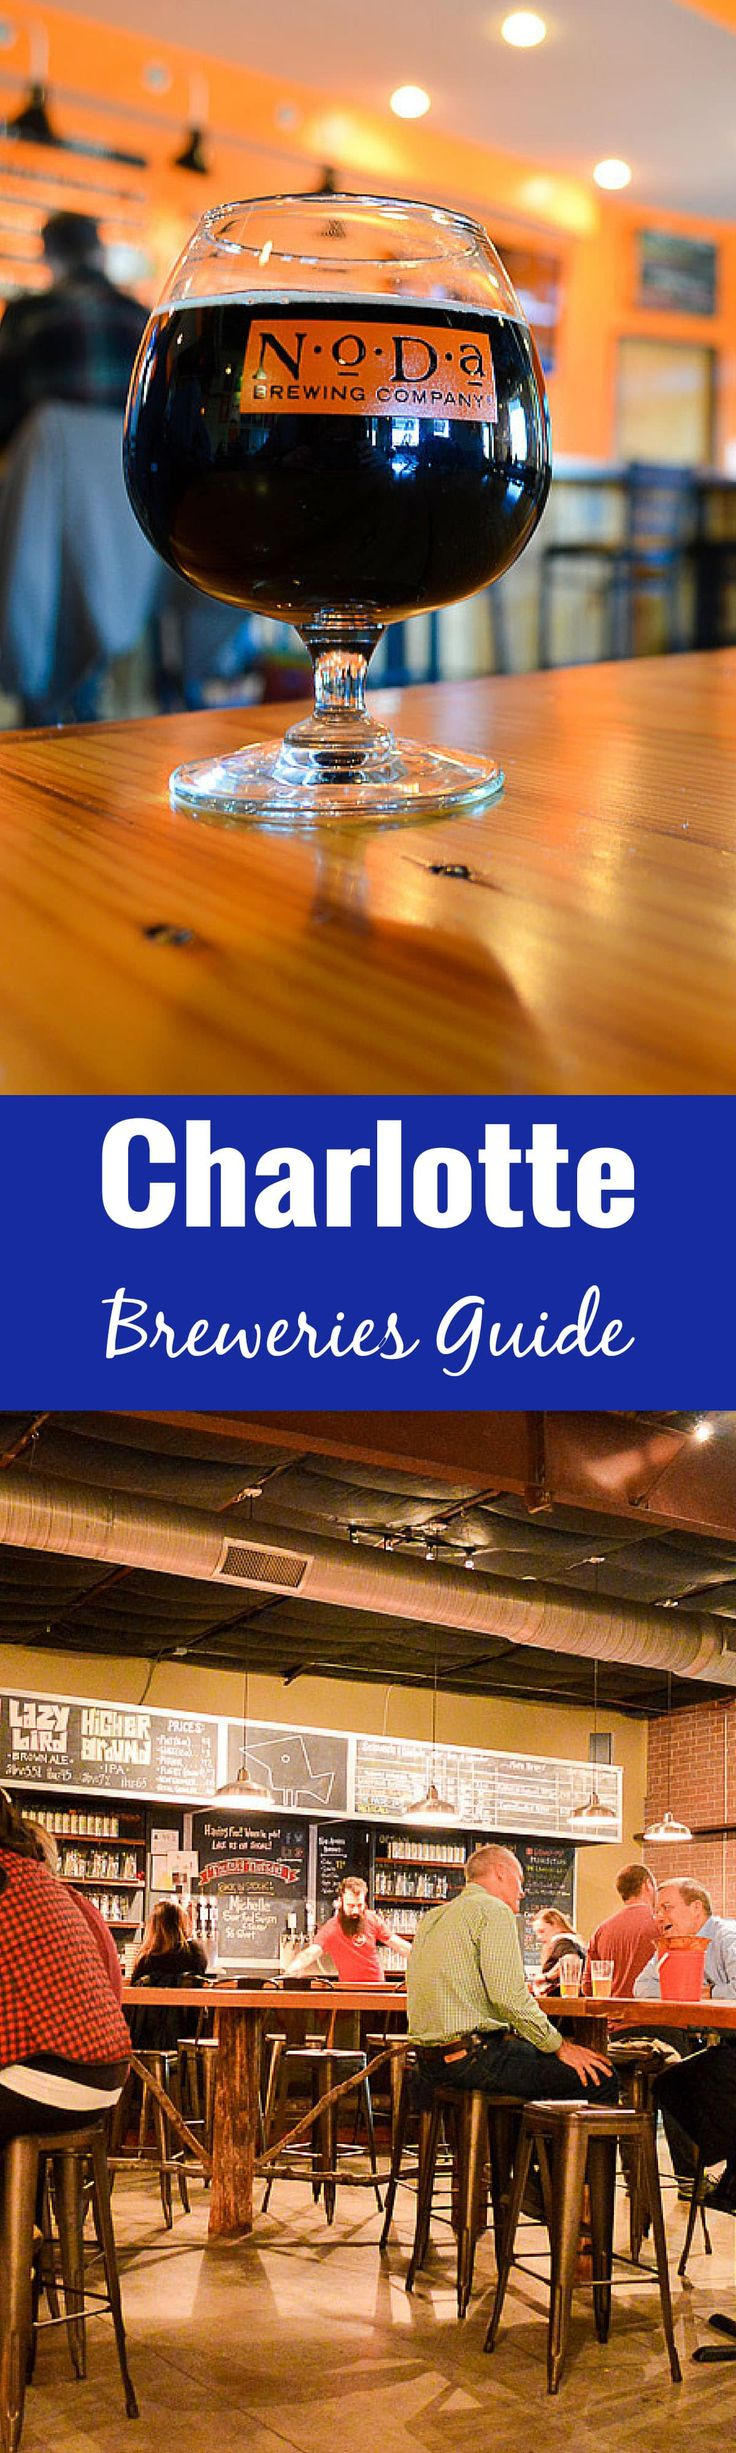 Enjoy a craft beer filled weekend in Charlotte, North Carolina with this Charlotte Breweries Guide. The best of Beer City, North Carolina!